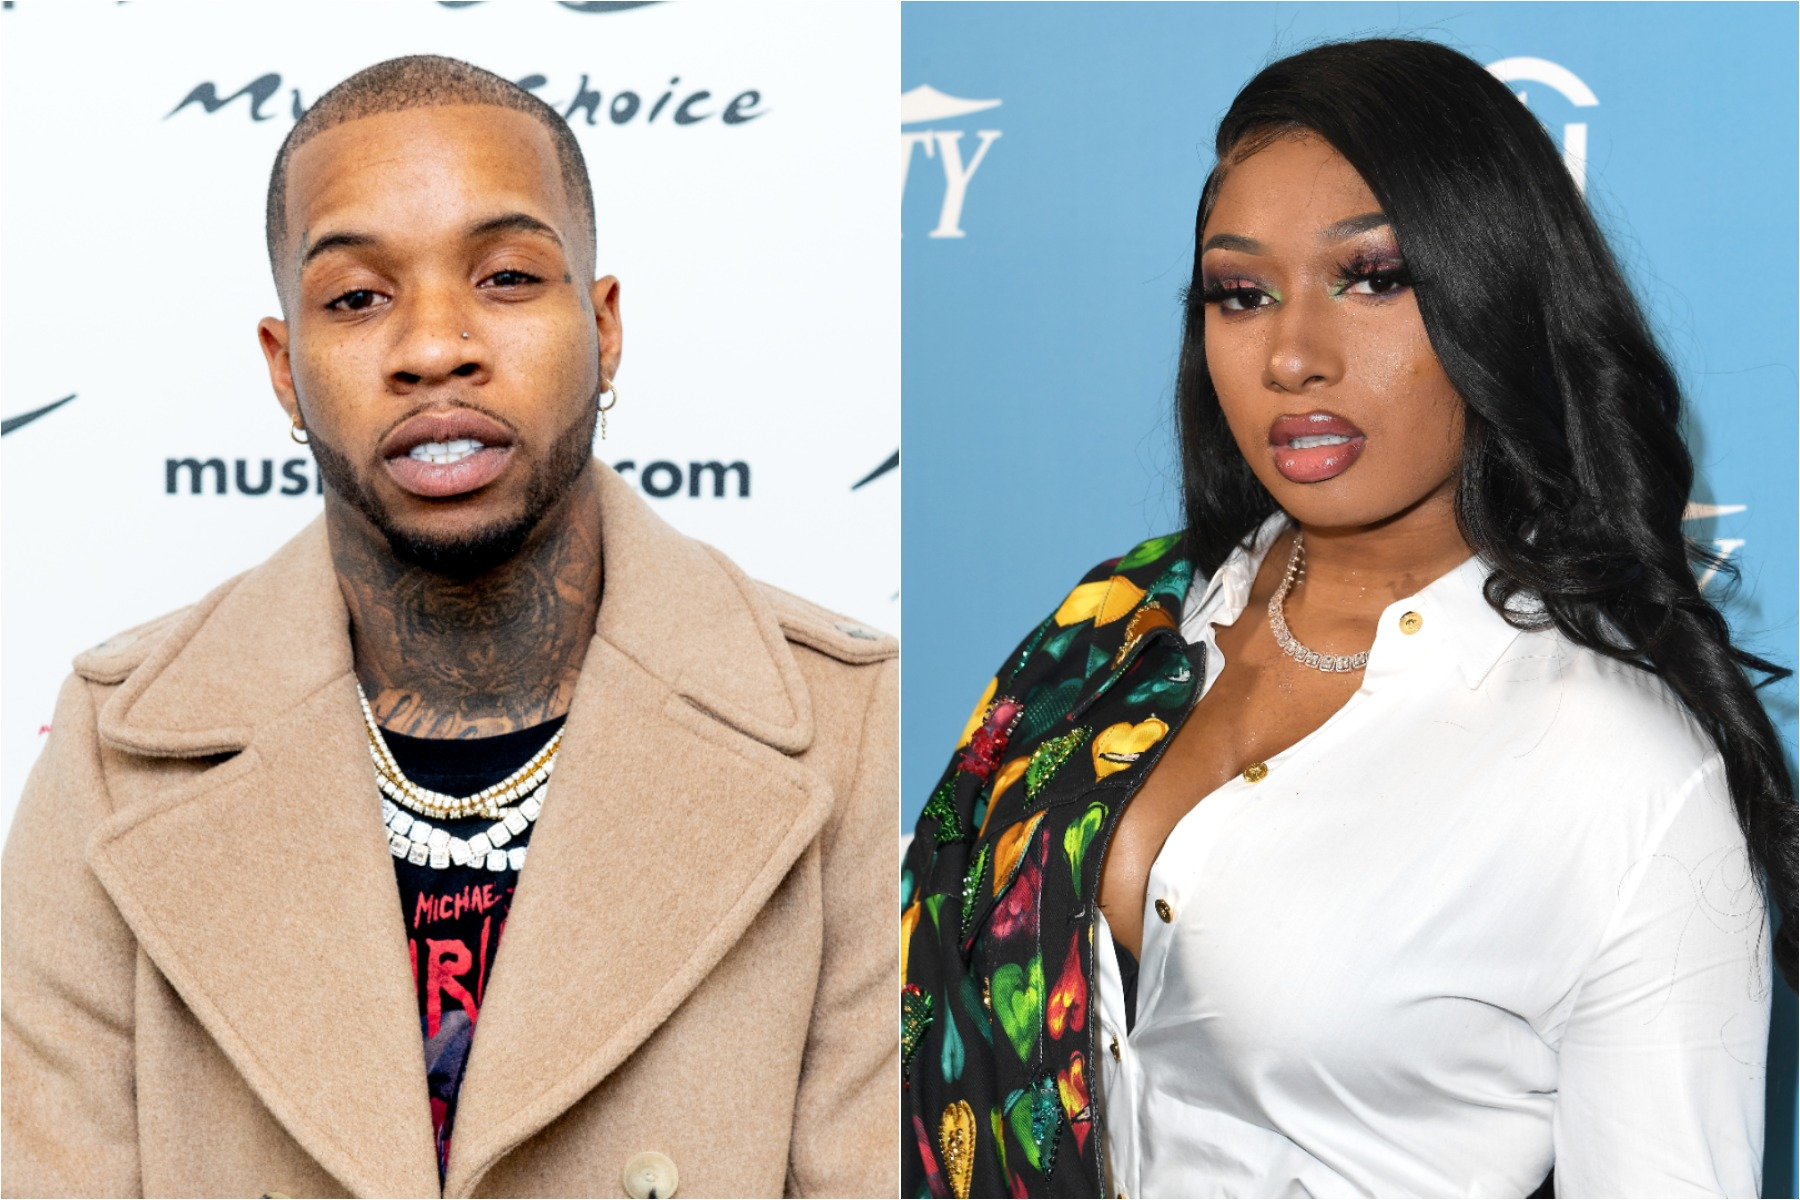 tory lanez charge shooting megan thee stallion